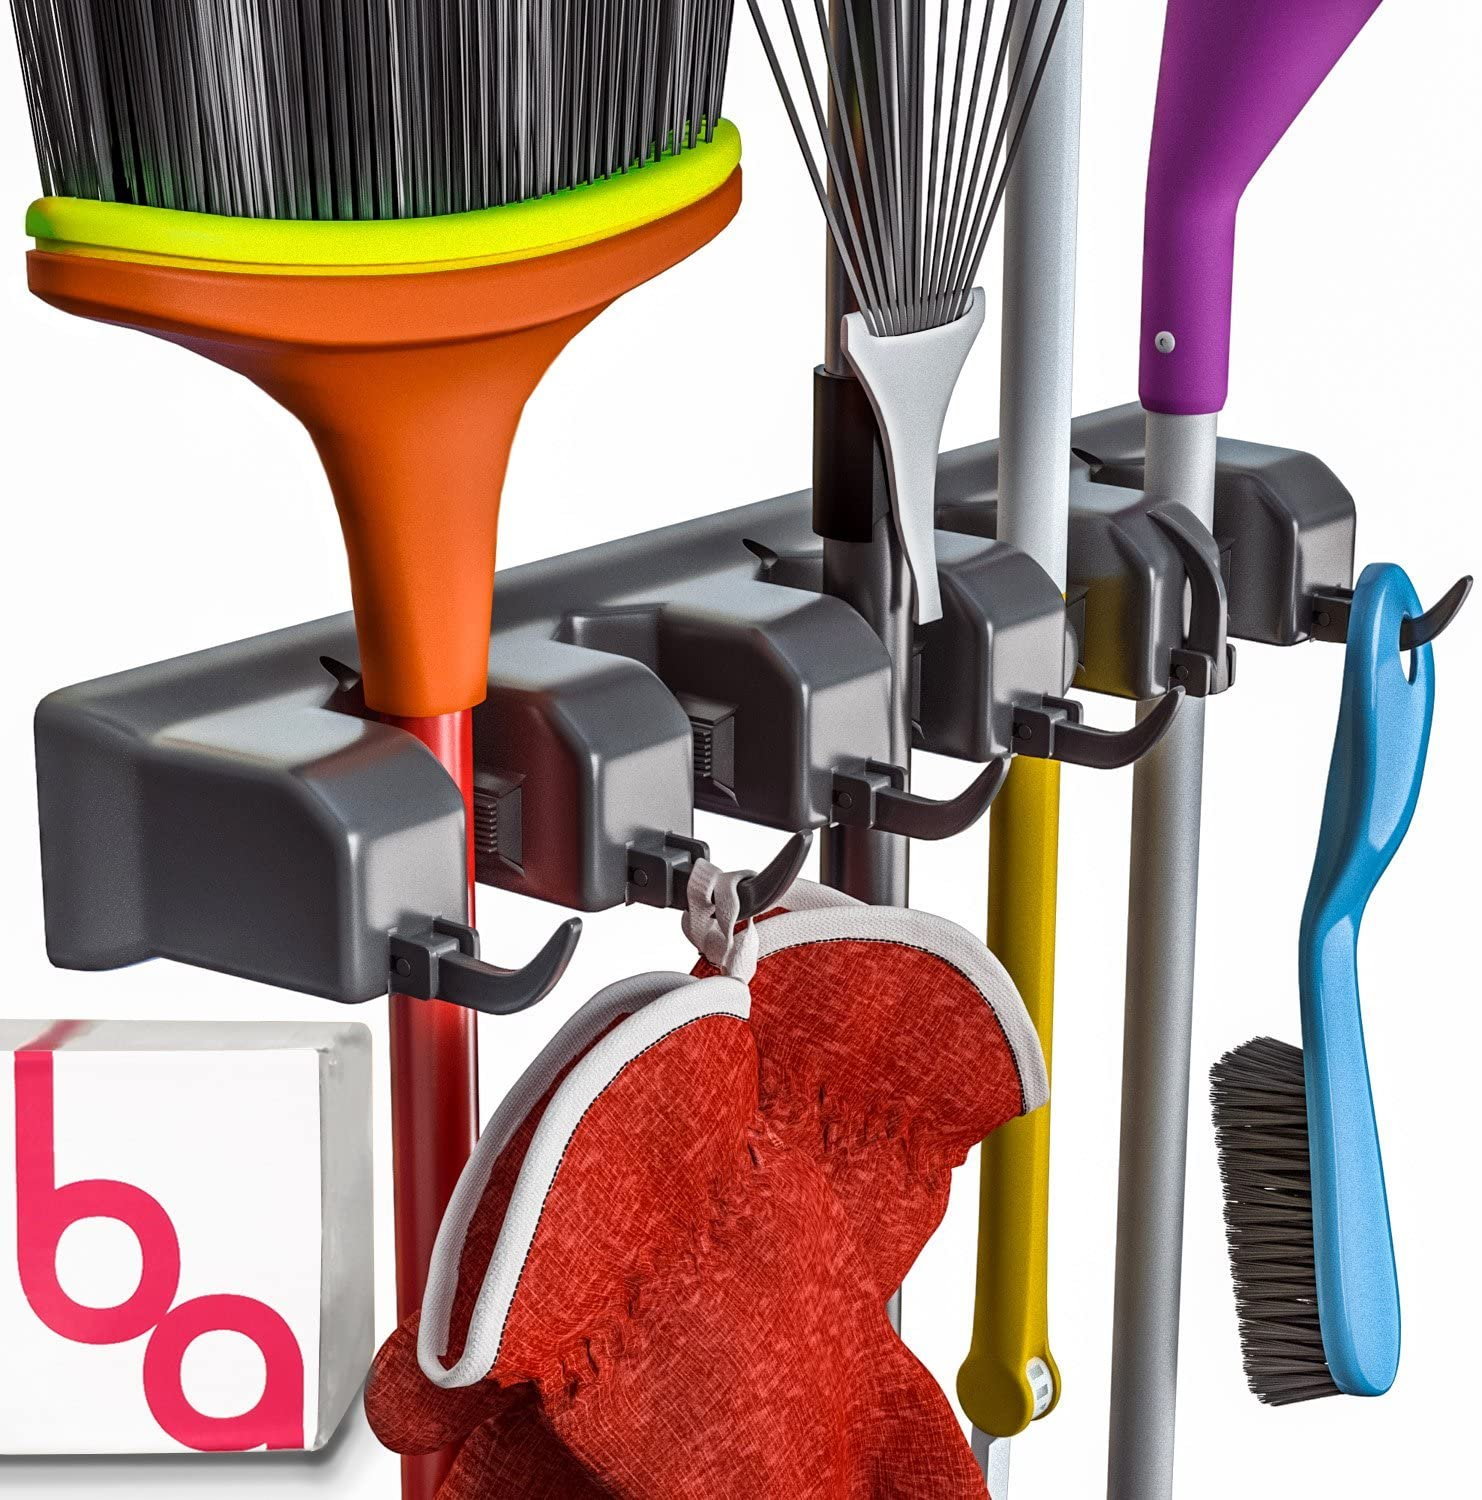 Berry Ave Mop and Broom Holder